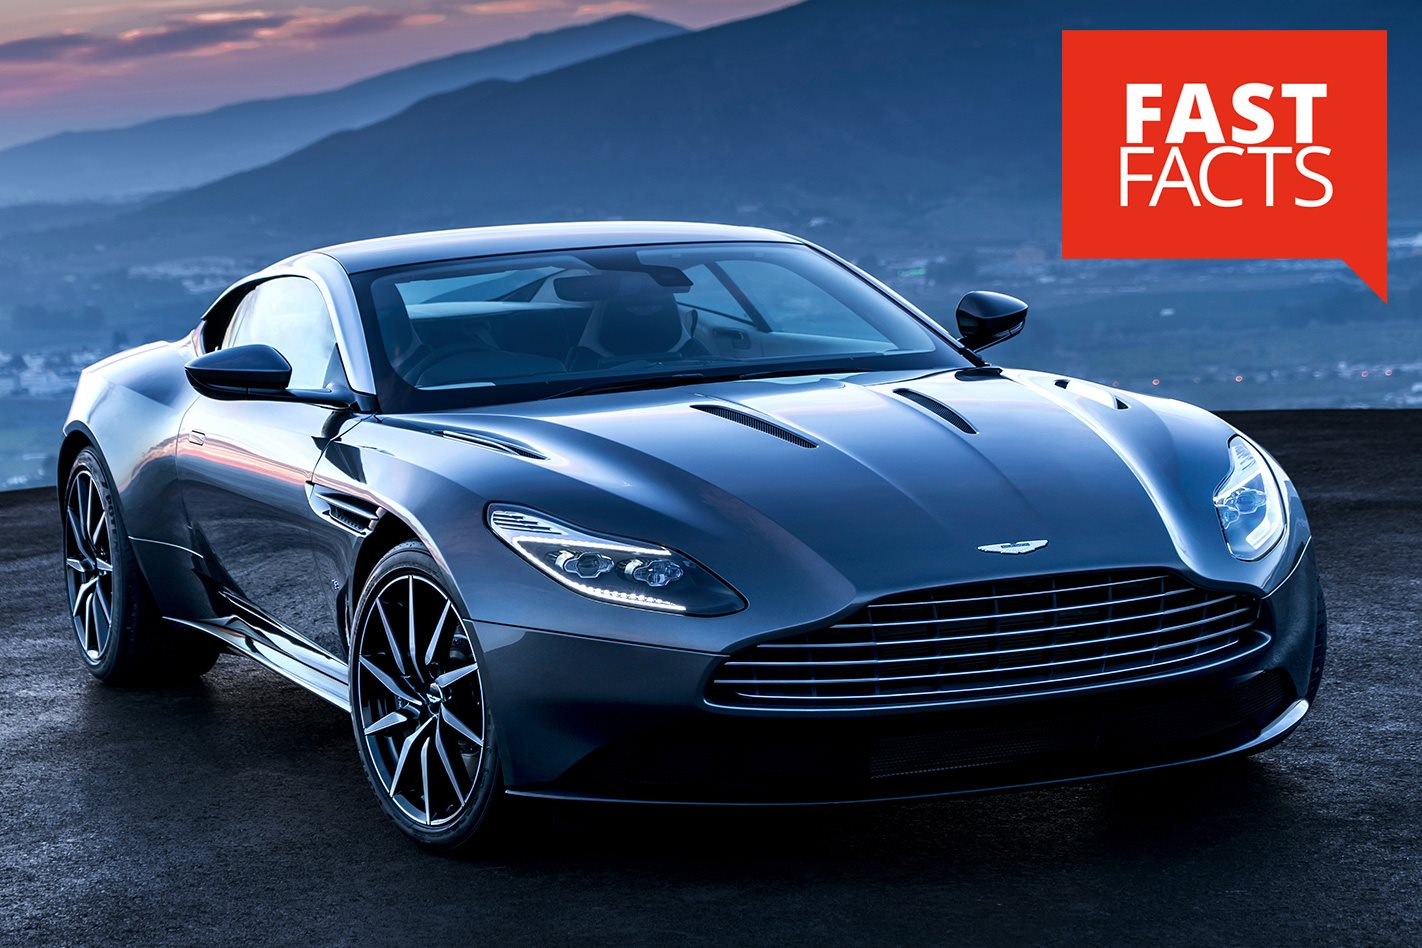 aston martin – history, trivia and fast facts